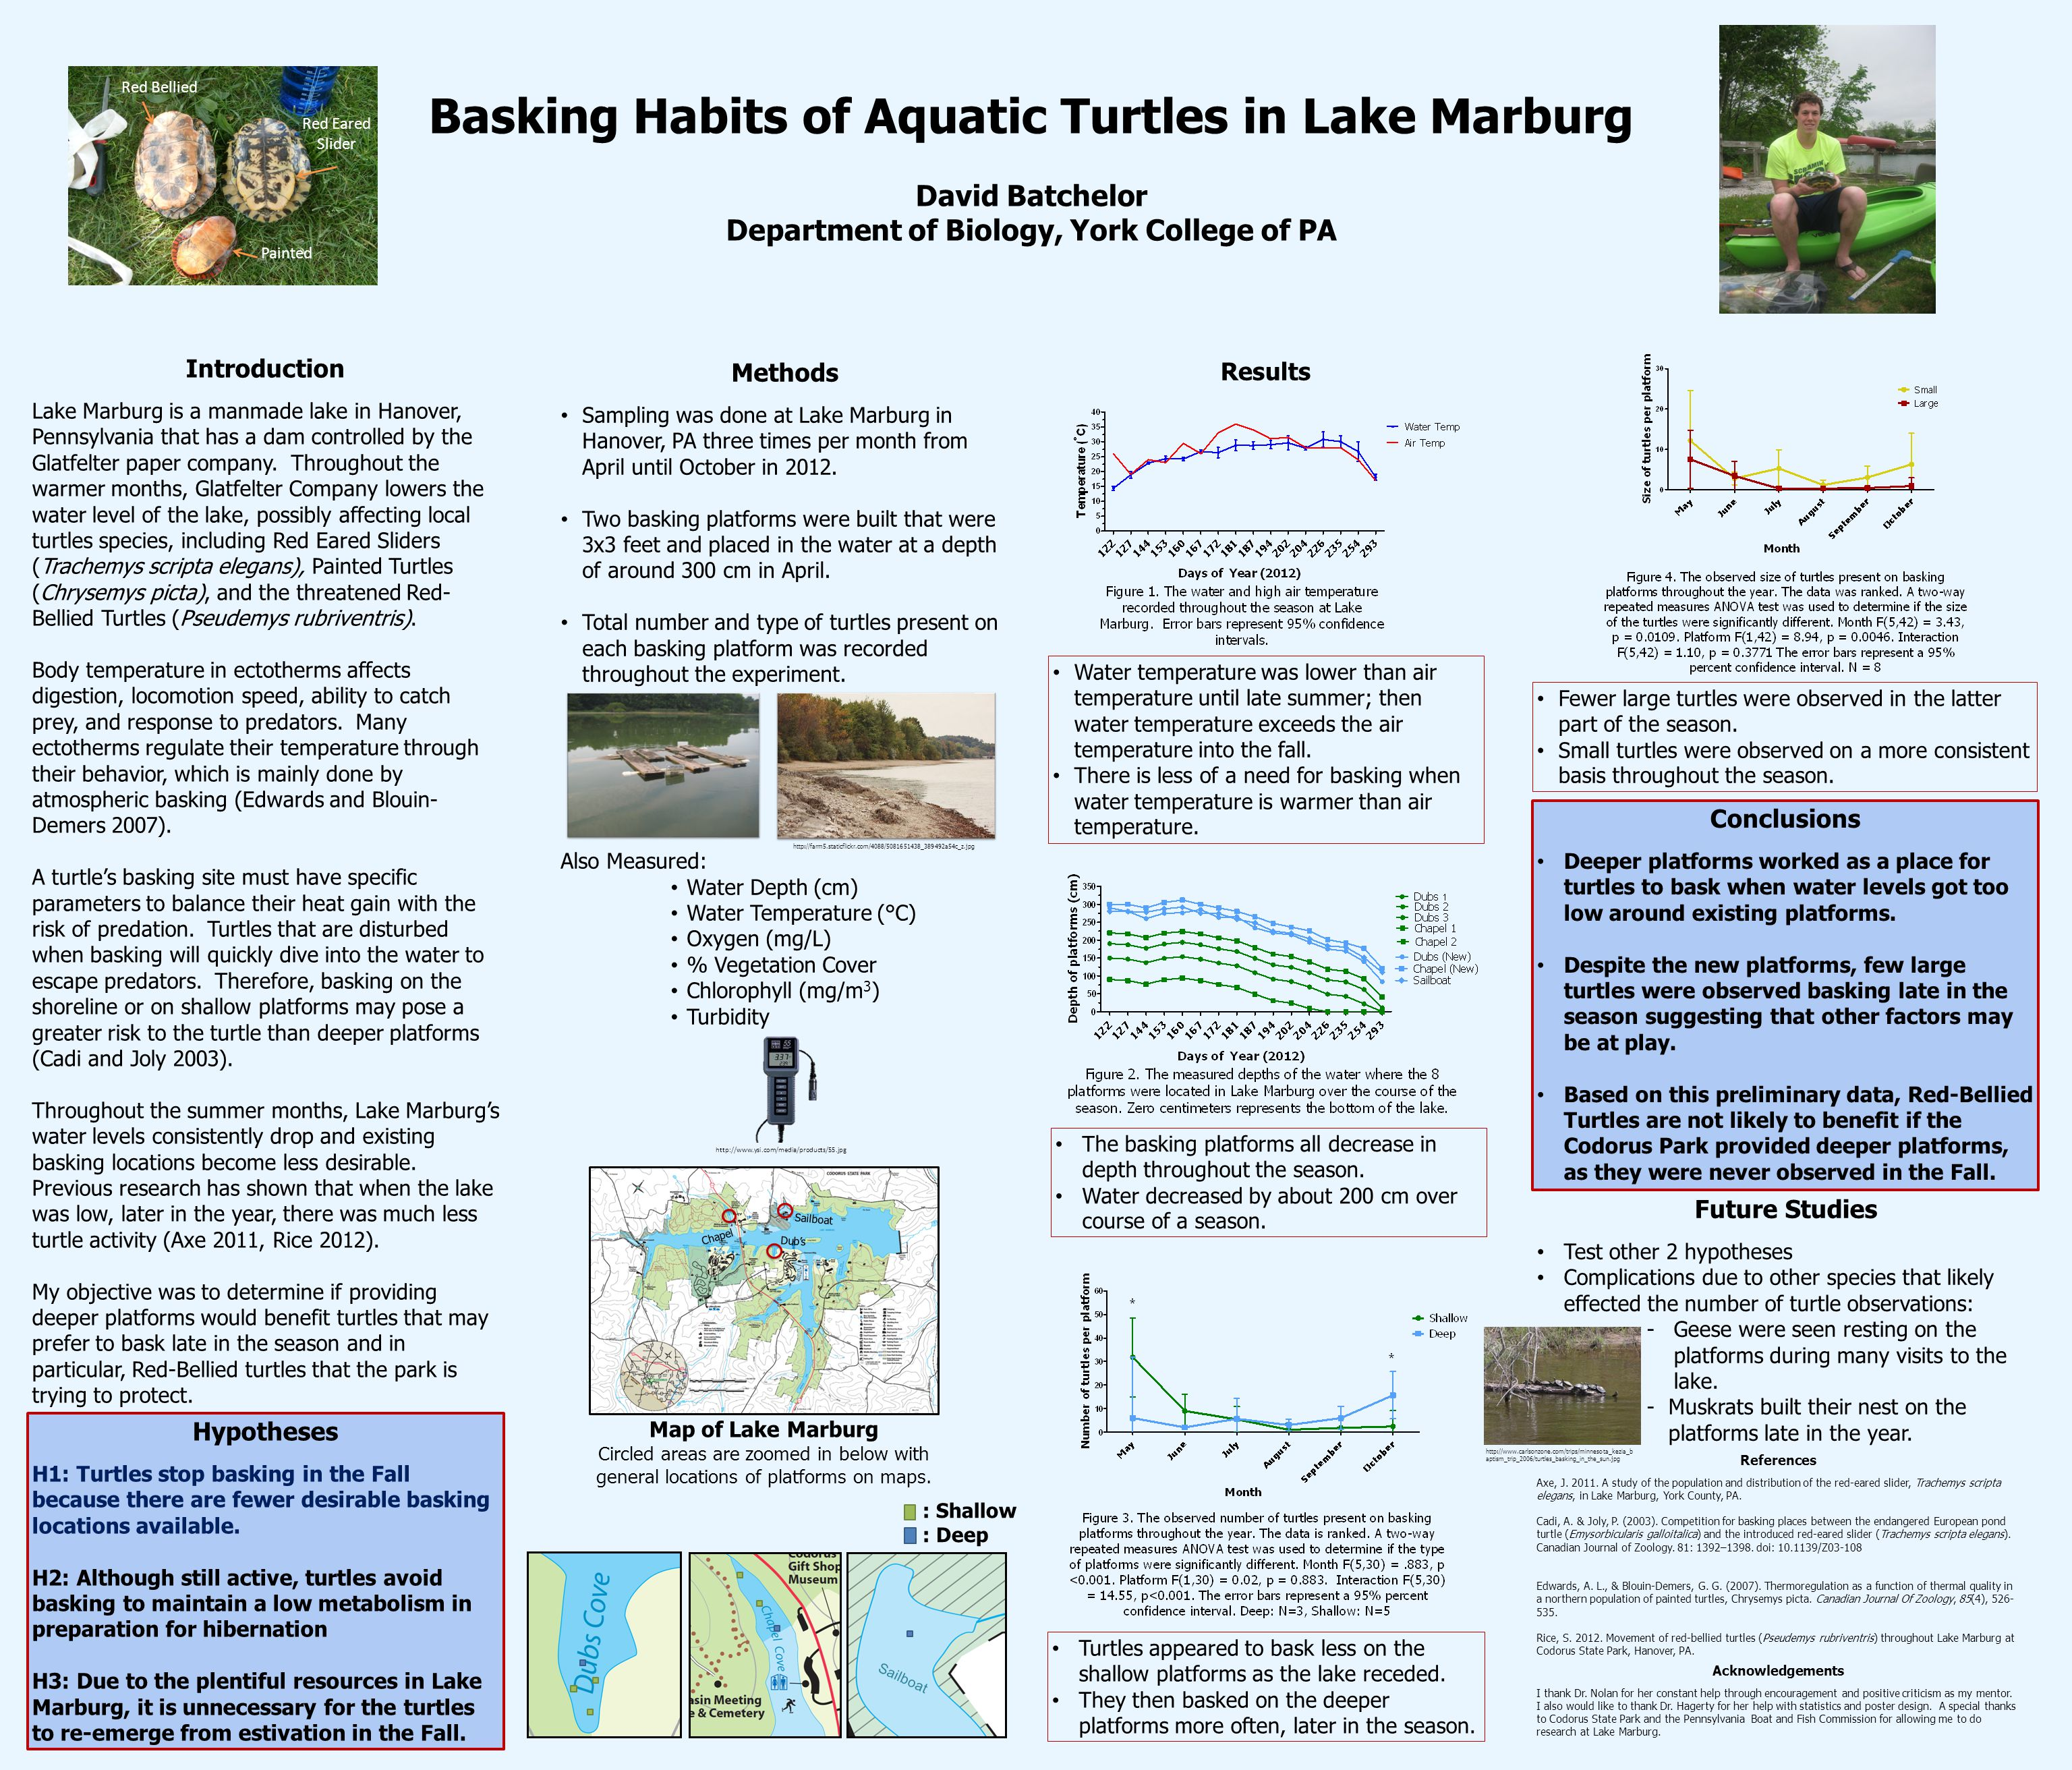 Basking Habits of Aquatic Turtles in Lake Marburg David Batchelor Department of Biology, York College of PA Painted Red Eared Slider Red Bellied Hypot